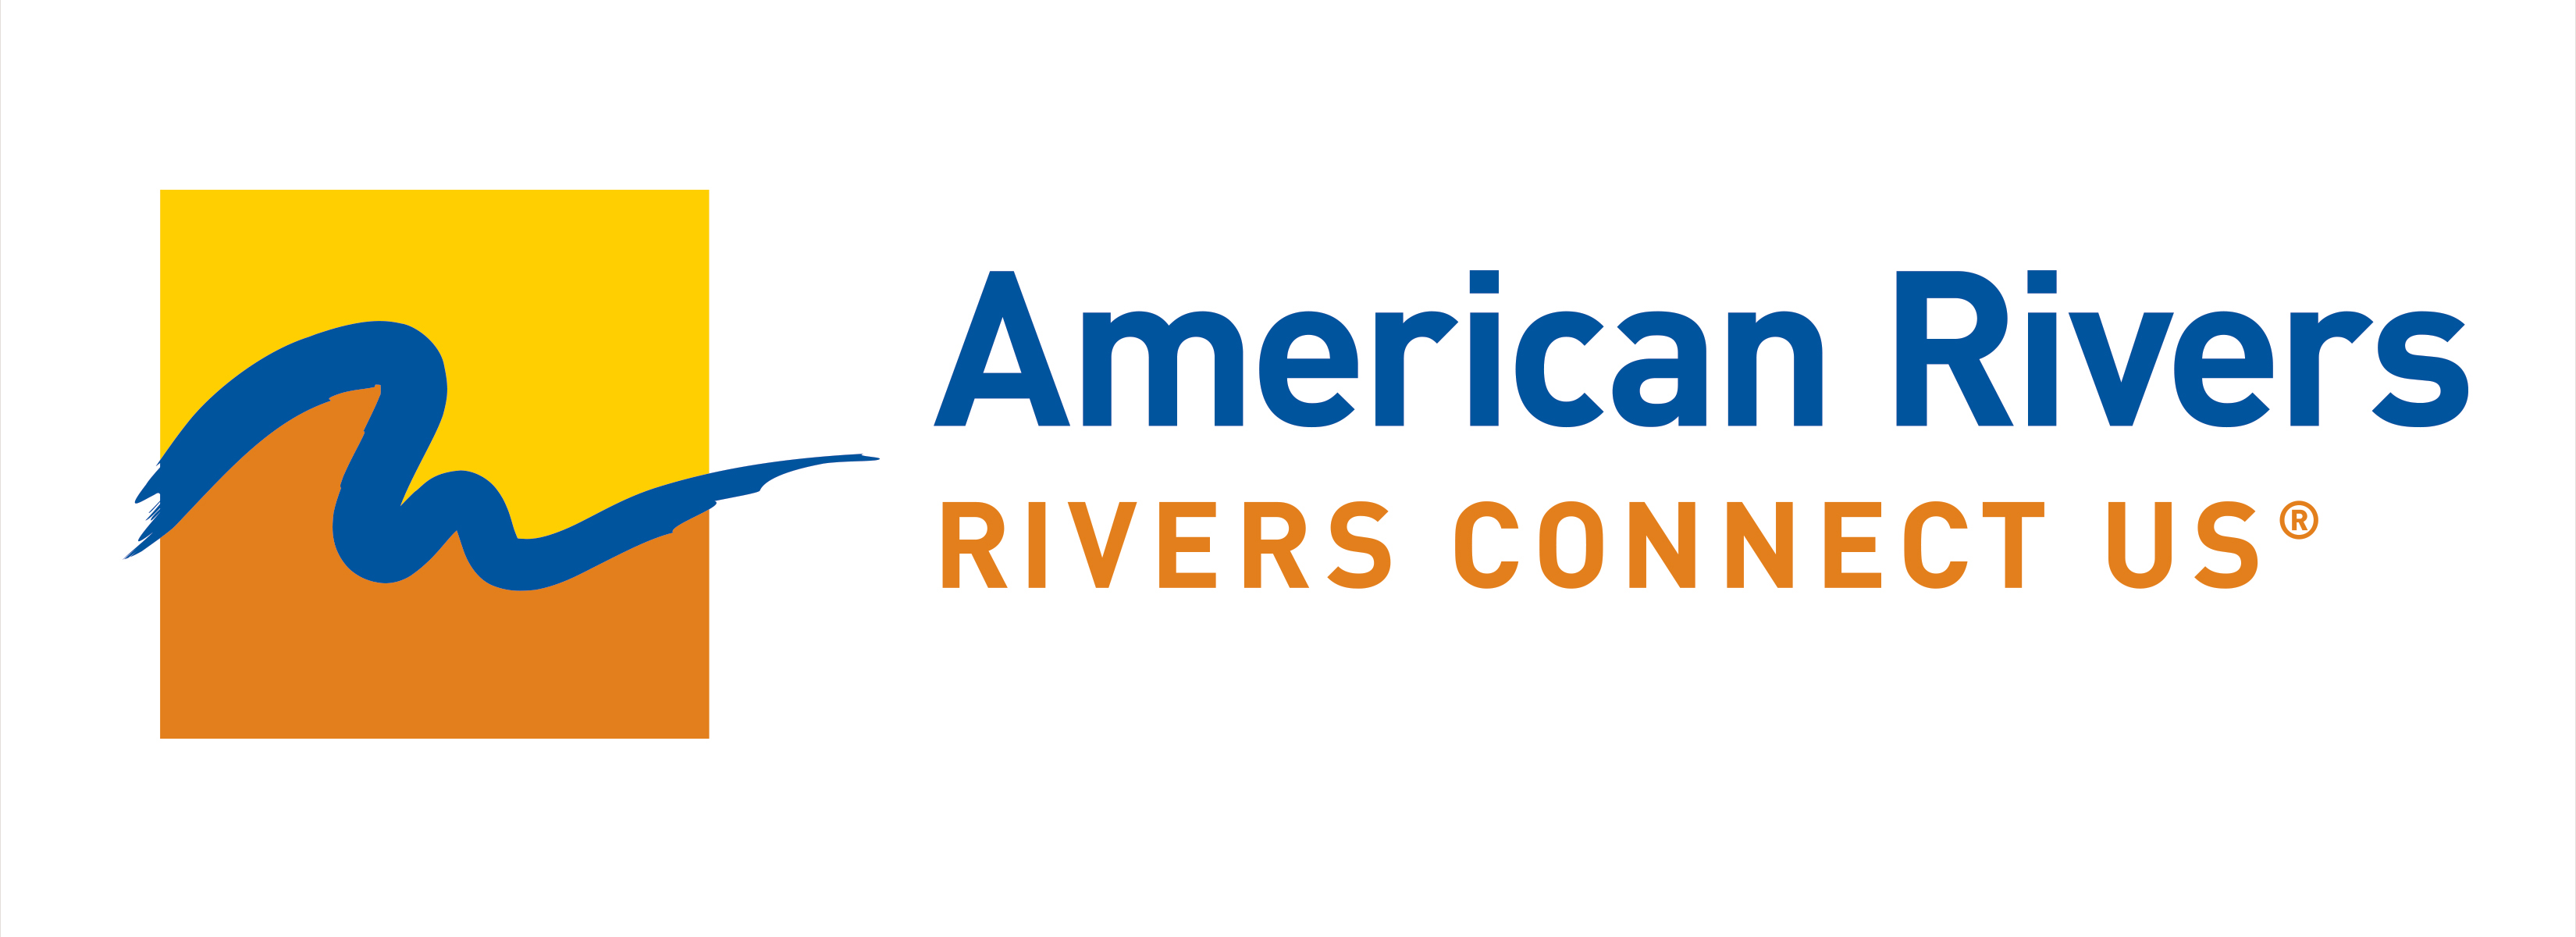 Take Action: American Rivers